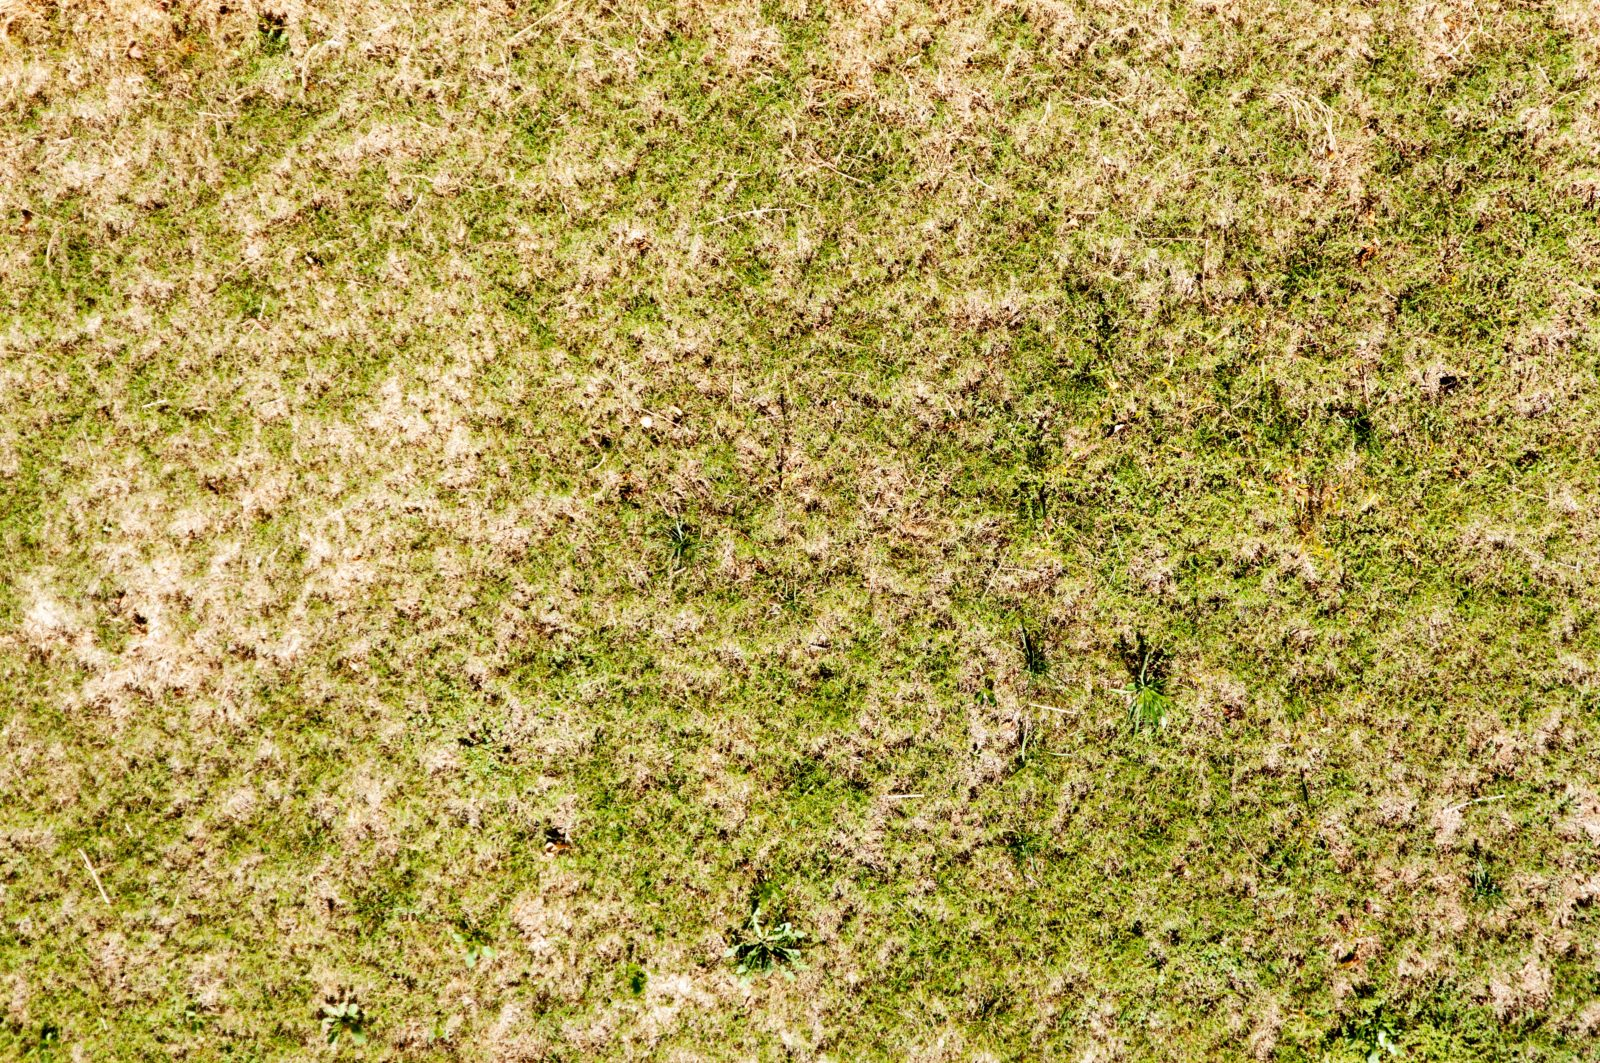 Dry green grass background